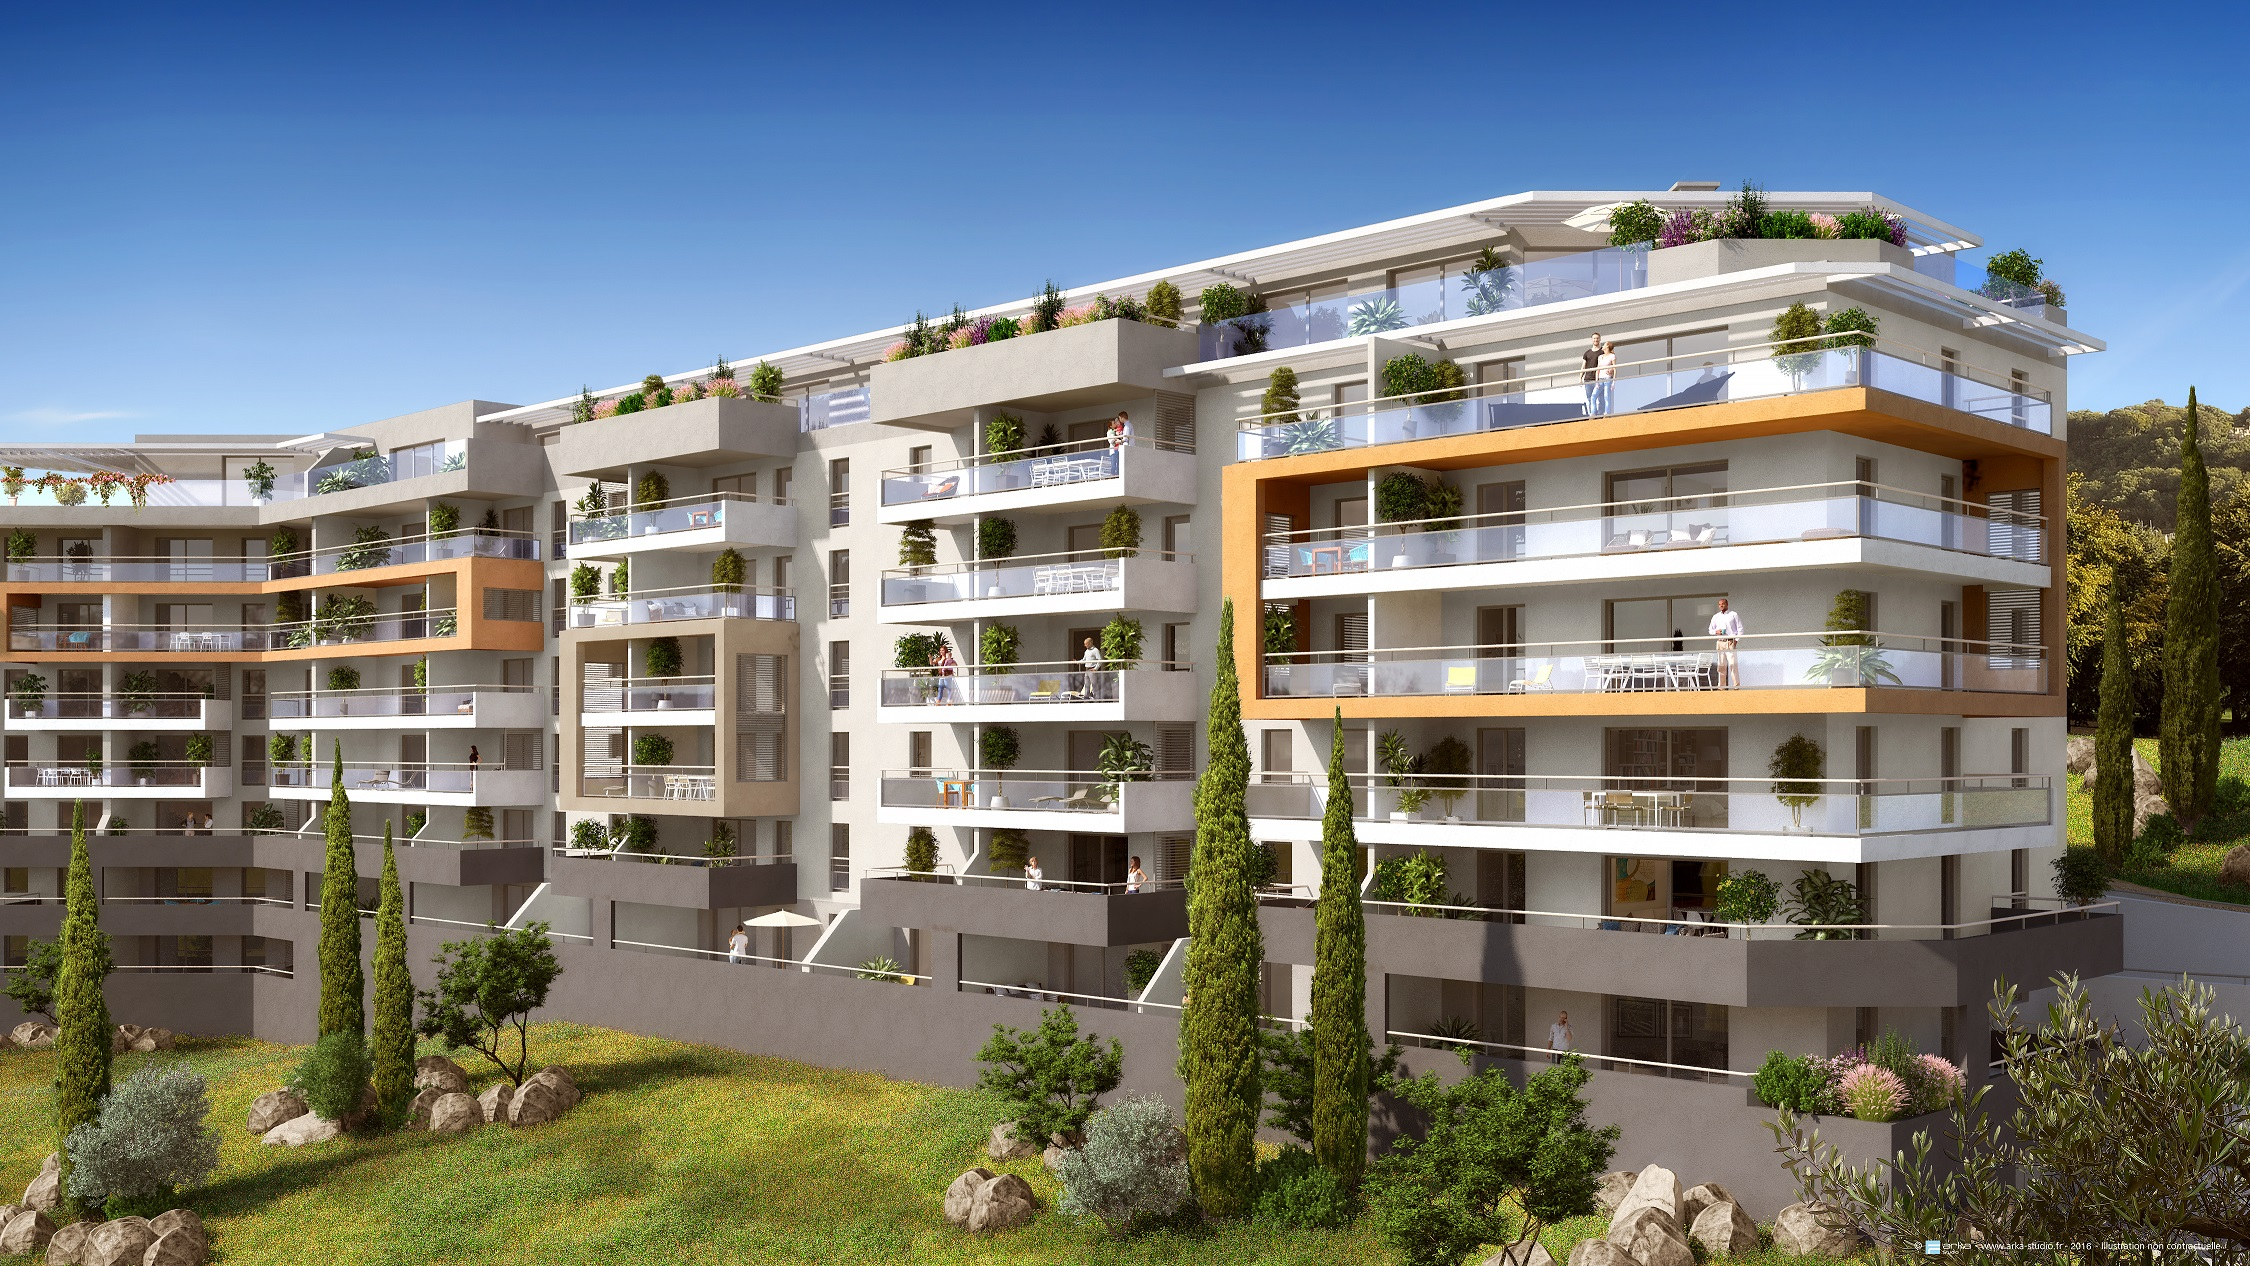 RESIDENCE GENOVESE - BAT A2 - Immeuble PARATA -